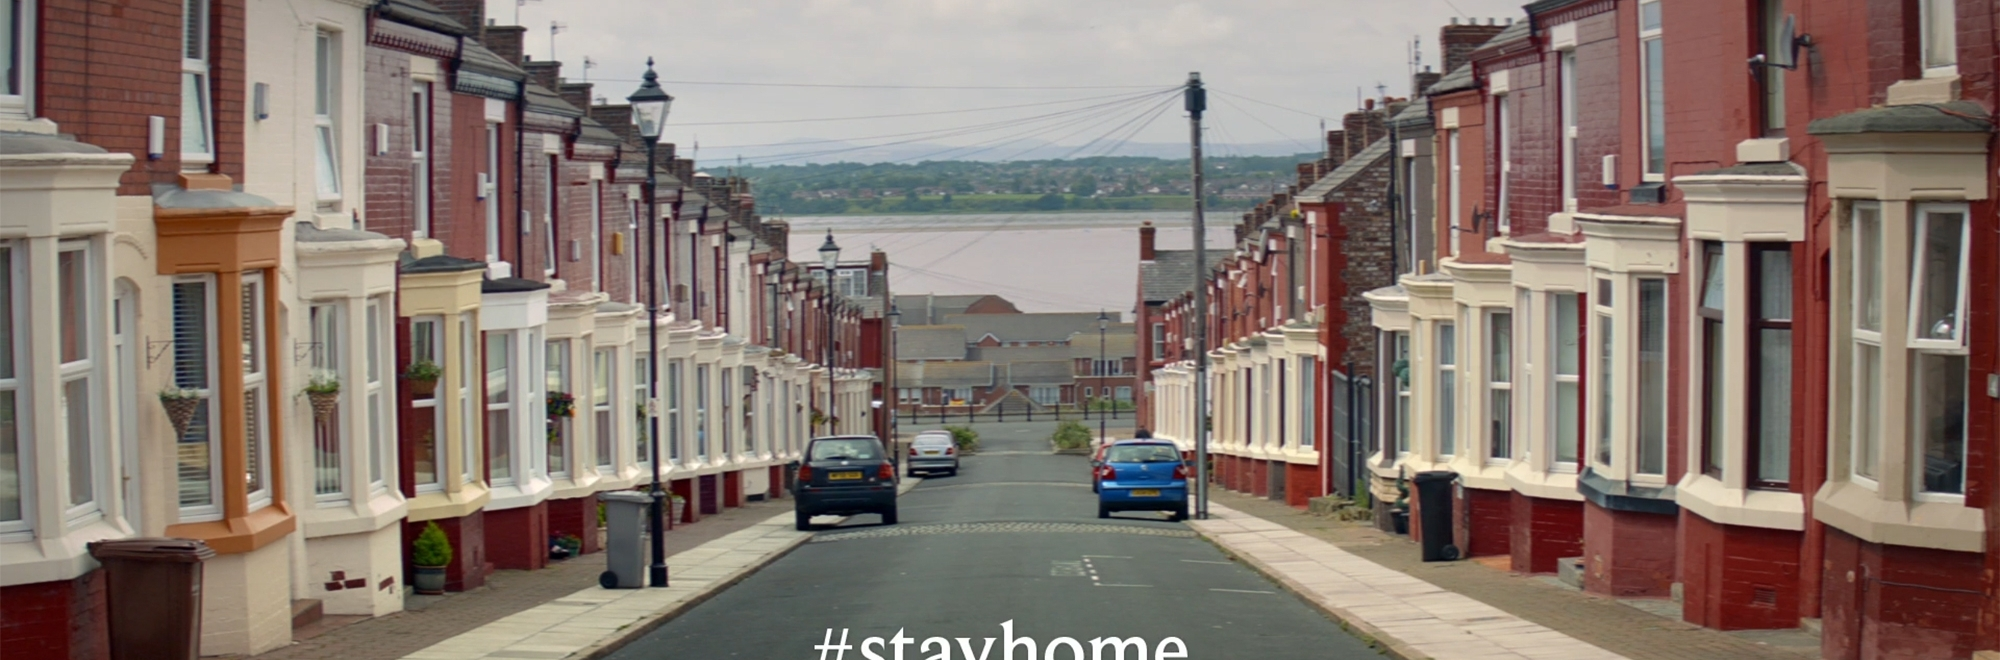 Grey London creates Cathedral City 'Stay Home' campaign in the national lockdown